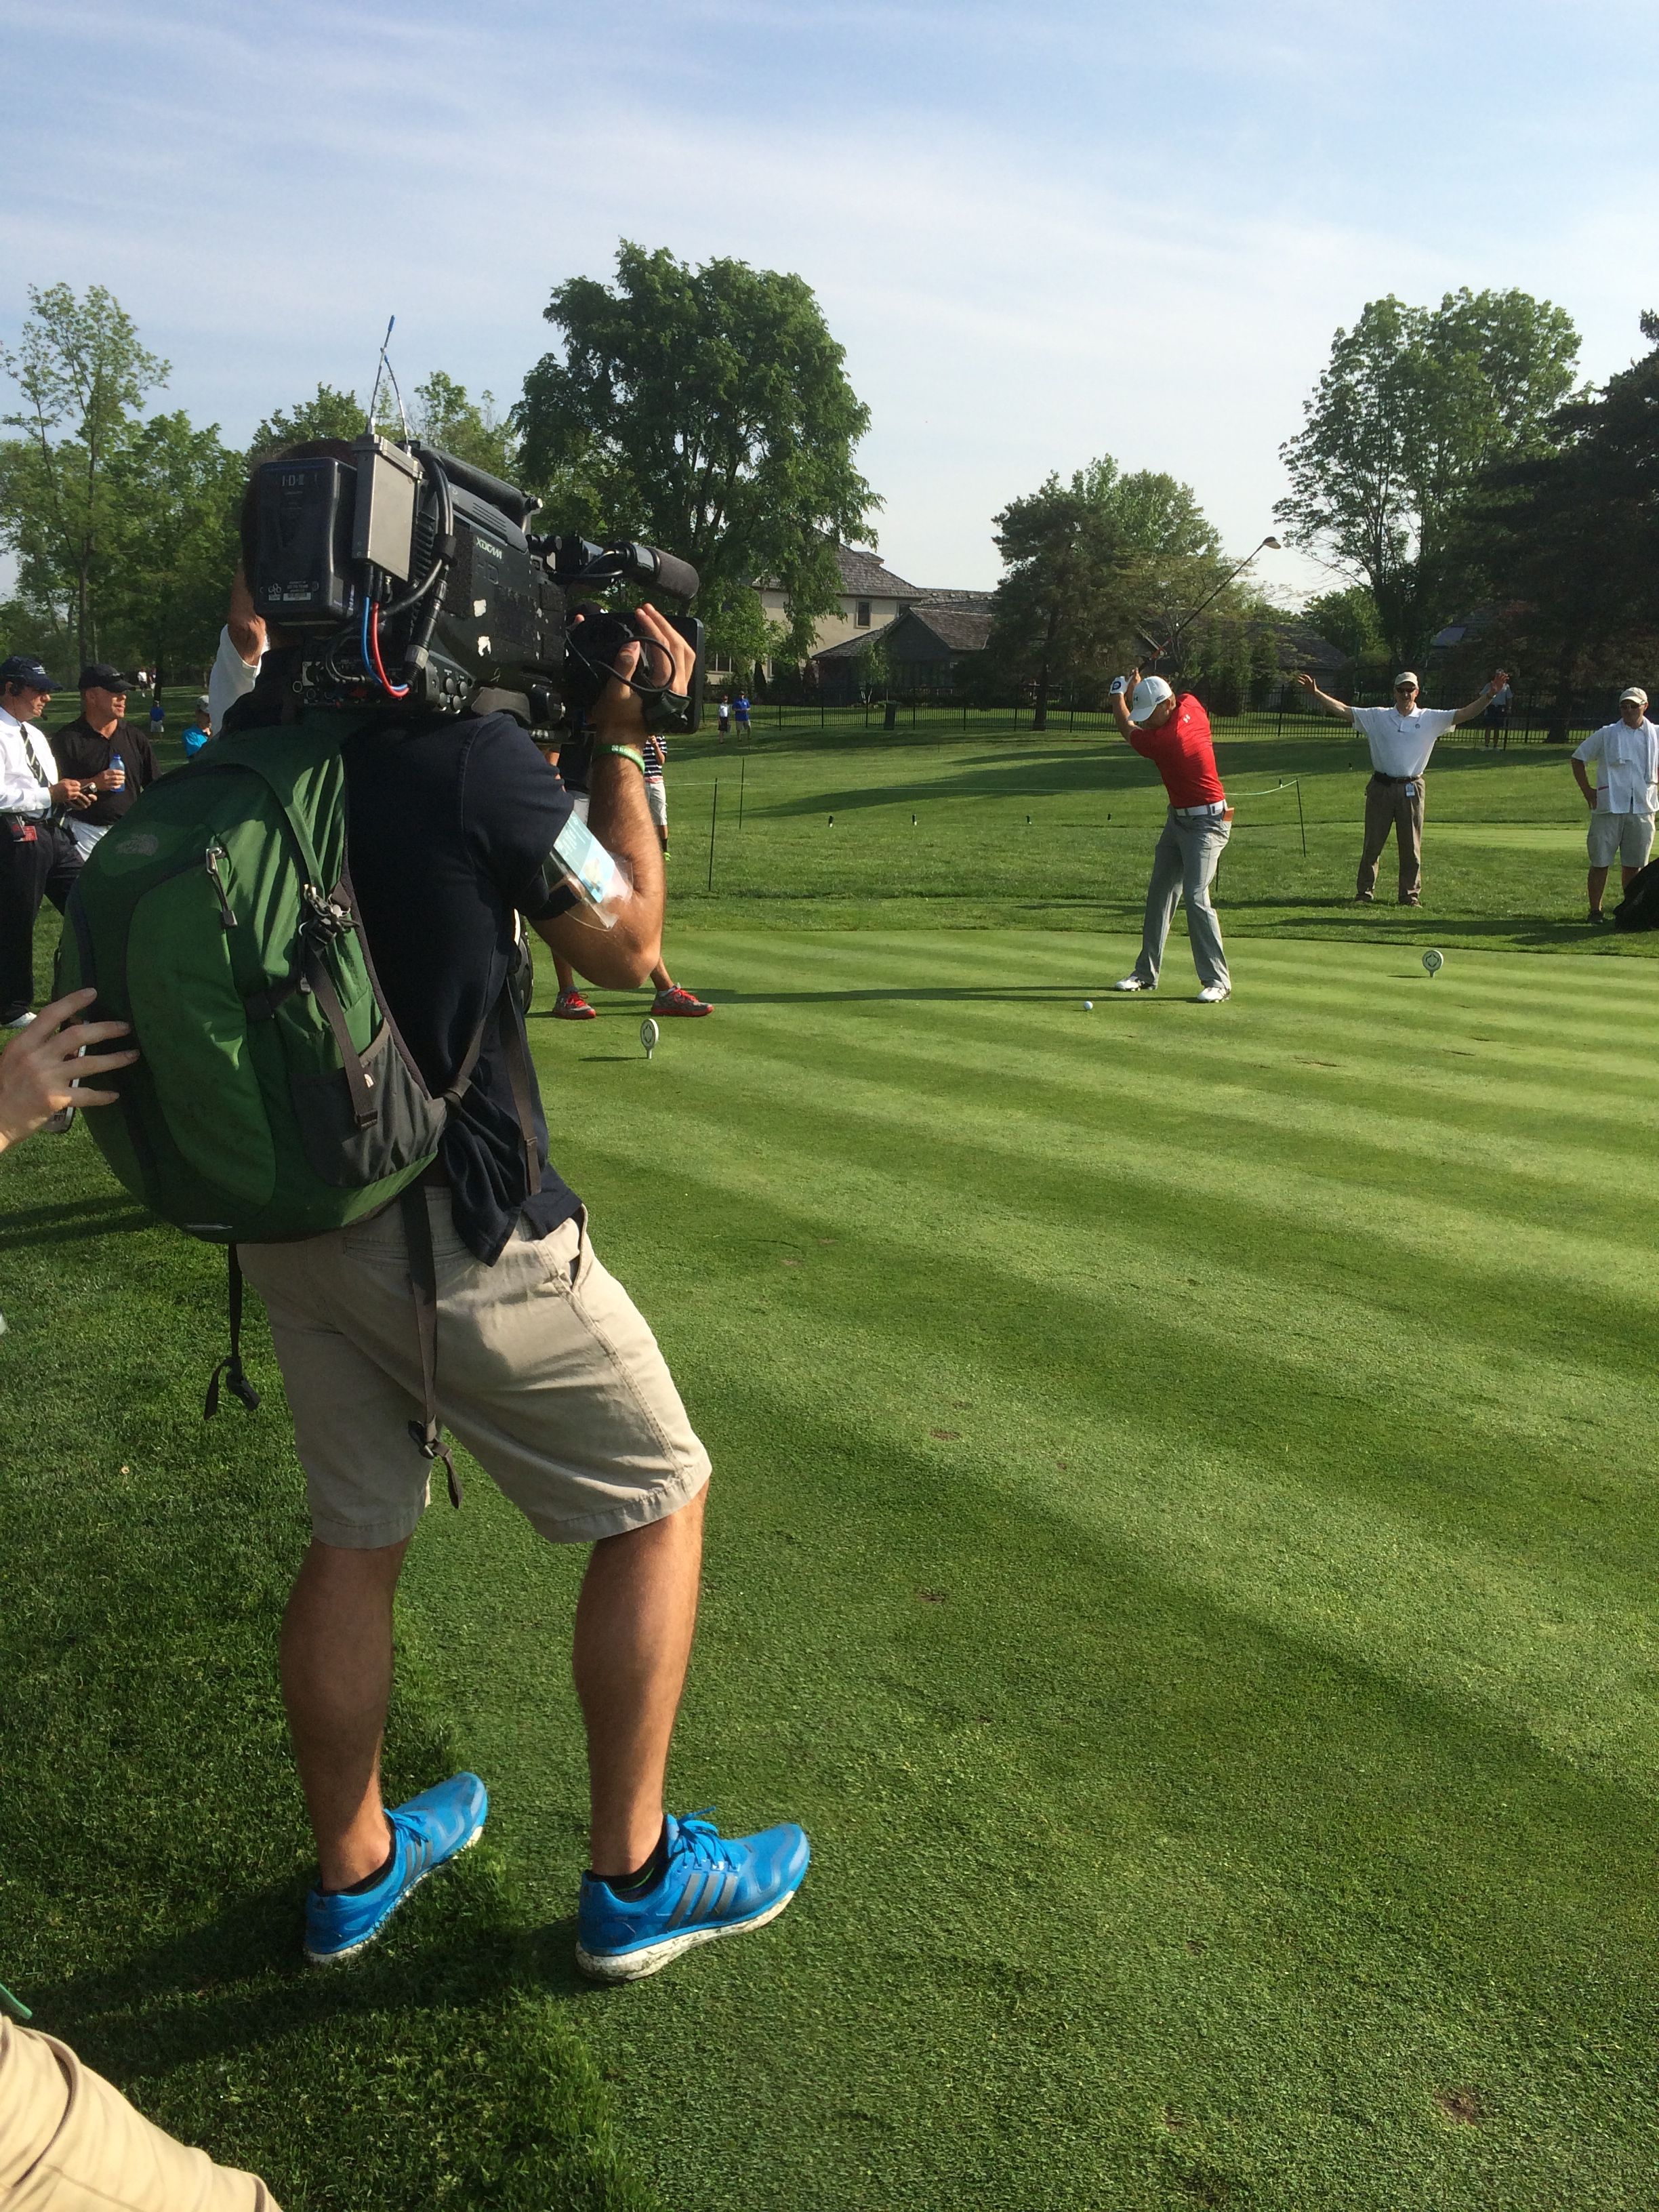 2014 05 28 08.57.30 Chicago Video Crew shoots Par for the course in Columbus for Golf Channel